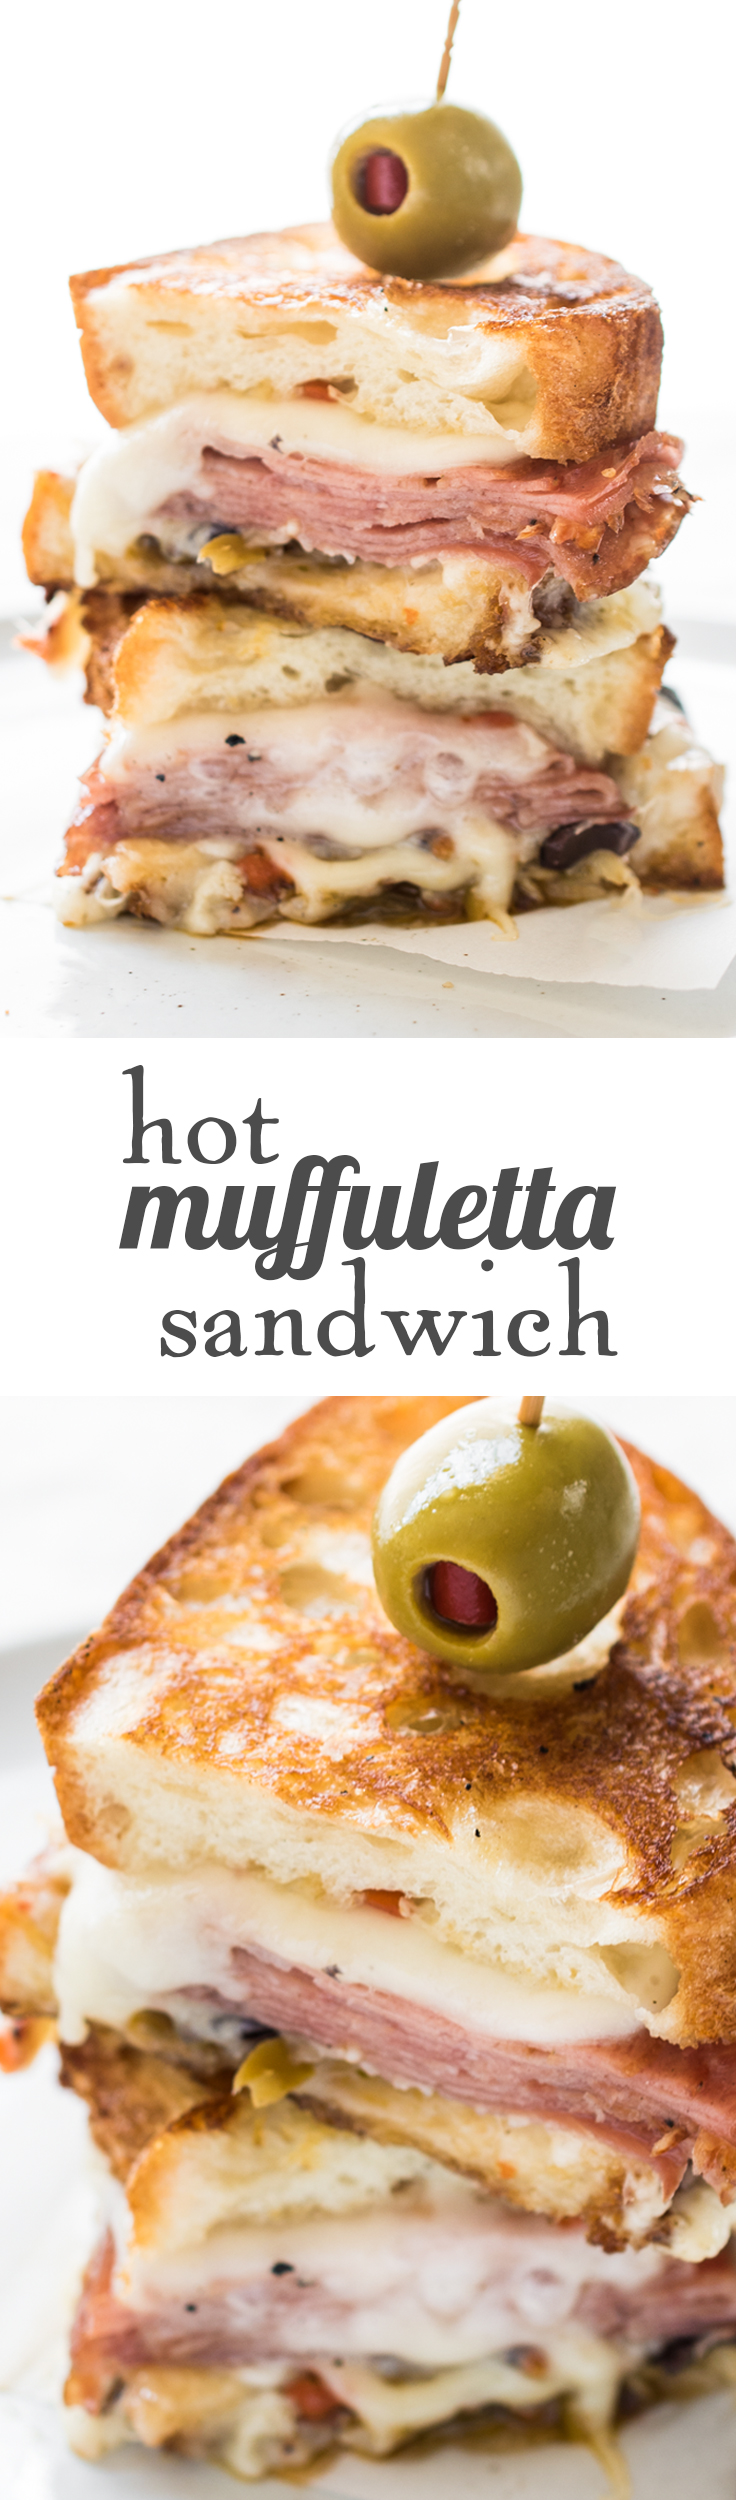 A Hot Muffaletta Sandwich dripping with cheese and packed with punch!